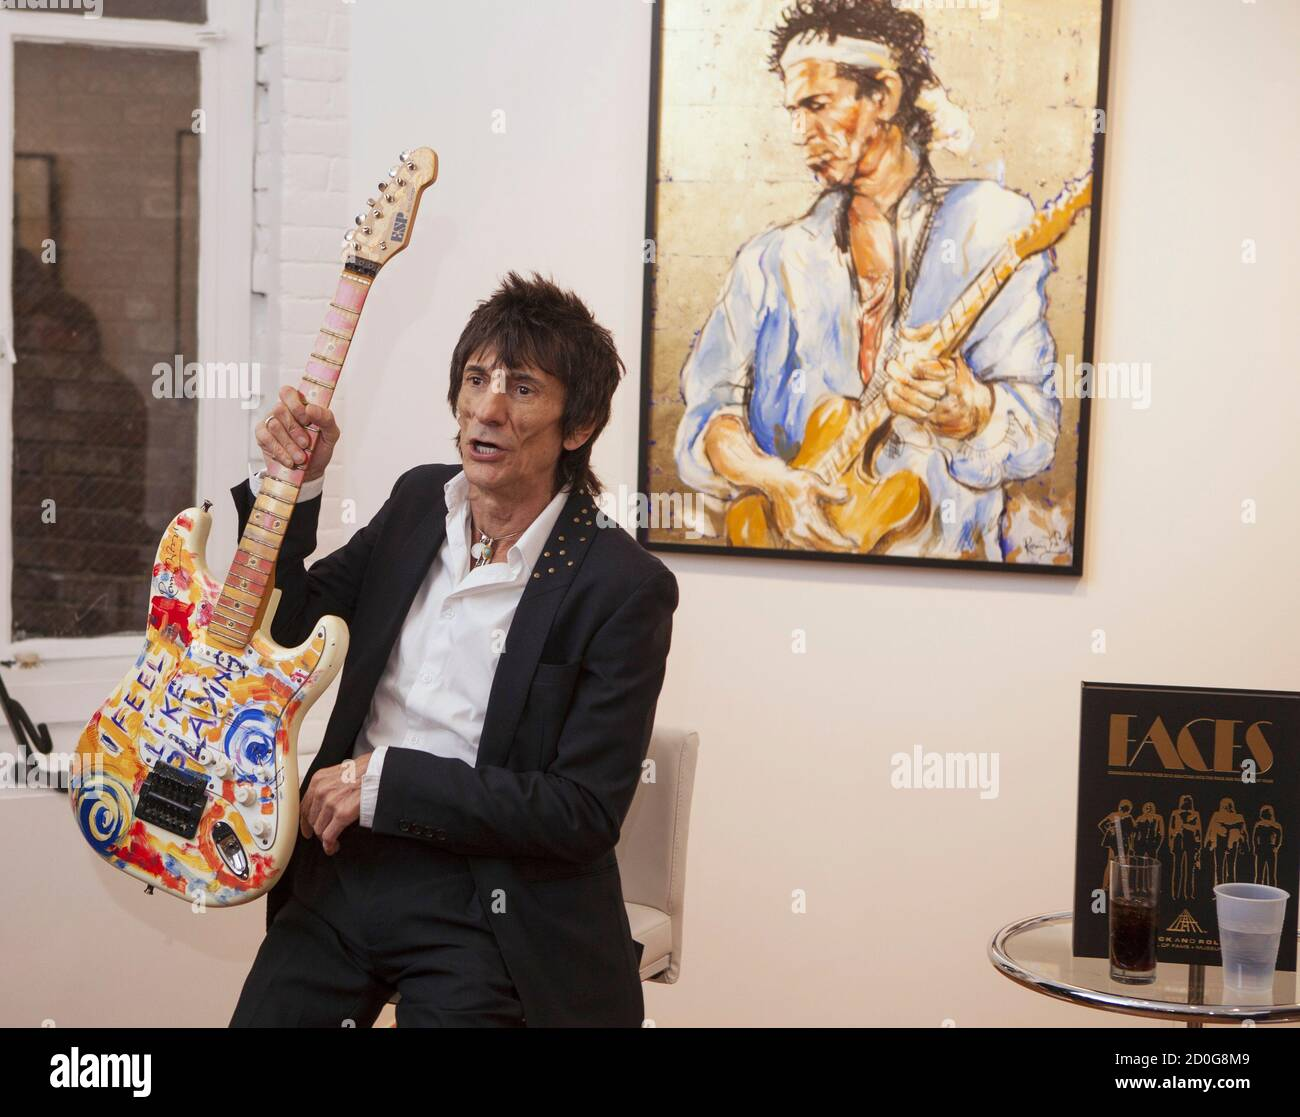 """Rolling Stones guitarist Ronnie Wood discusses his art during a news conference at his """"Faces, Time and Places"""" gallery show in New York April 9, 2012. The British guitarist known for his jamming skills with the bands such as """"The Faces"""" and """"Rolling Stones"""" along with his highly documented battles with alcoholism and drug abuse is also a trained visual artist. The exhibit titled """"Faces, Time and Places"""" showcases Wood's finest work made over the period of four decades comprised of original paintings and sketches that are up for sale. REUTERS/Lucas Jackson (UNITED STATES - Tags: ENTERTAINMENT) Stock Photo"""